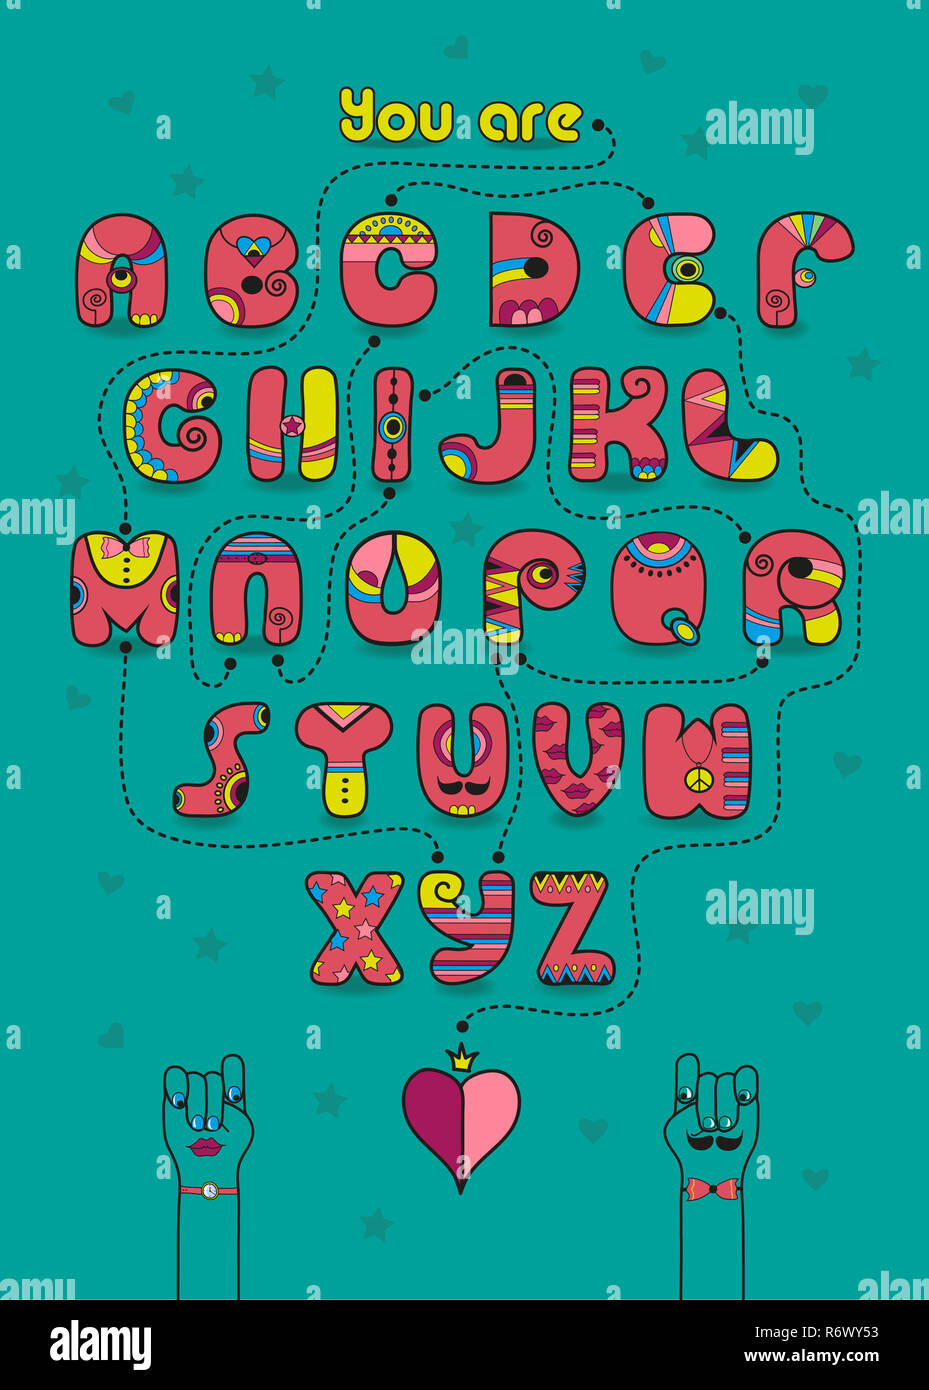 Romantic cipher text. You are my prince Stock Photo